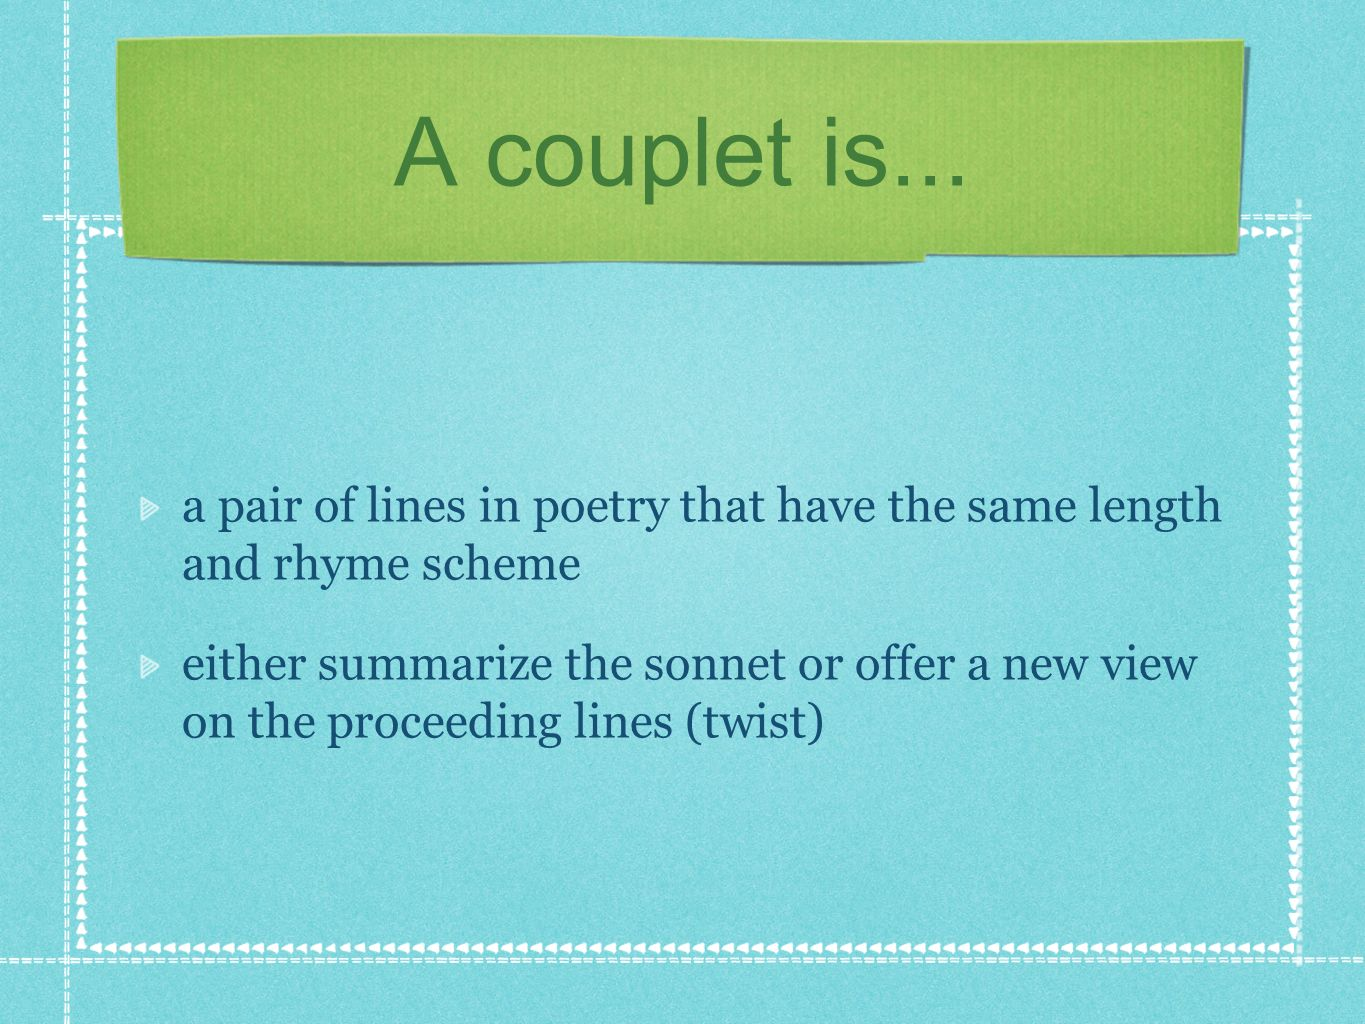 A couplet is... a pair of lines in poetry that have the same length and rhyme scheme.